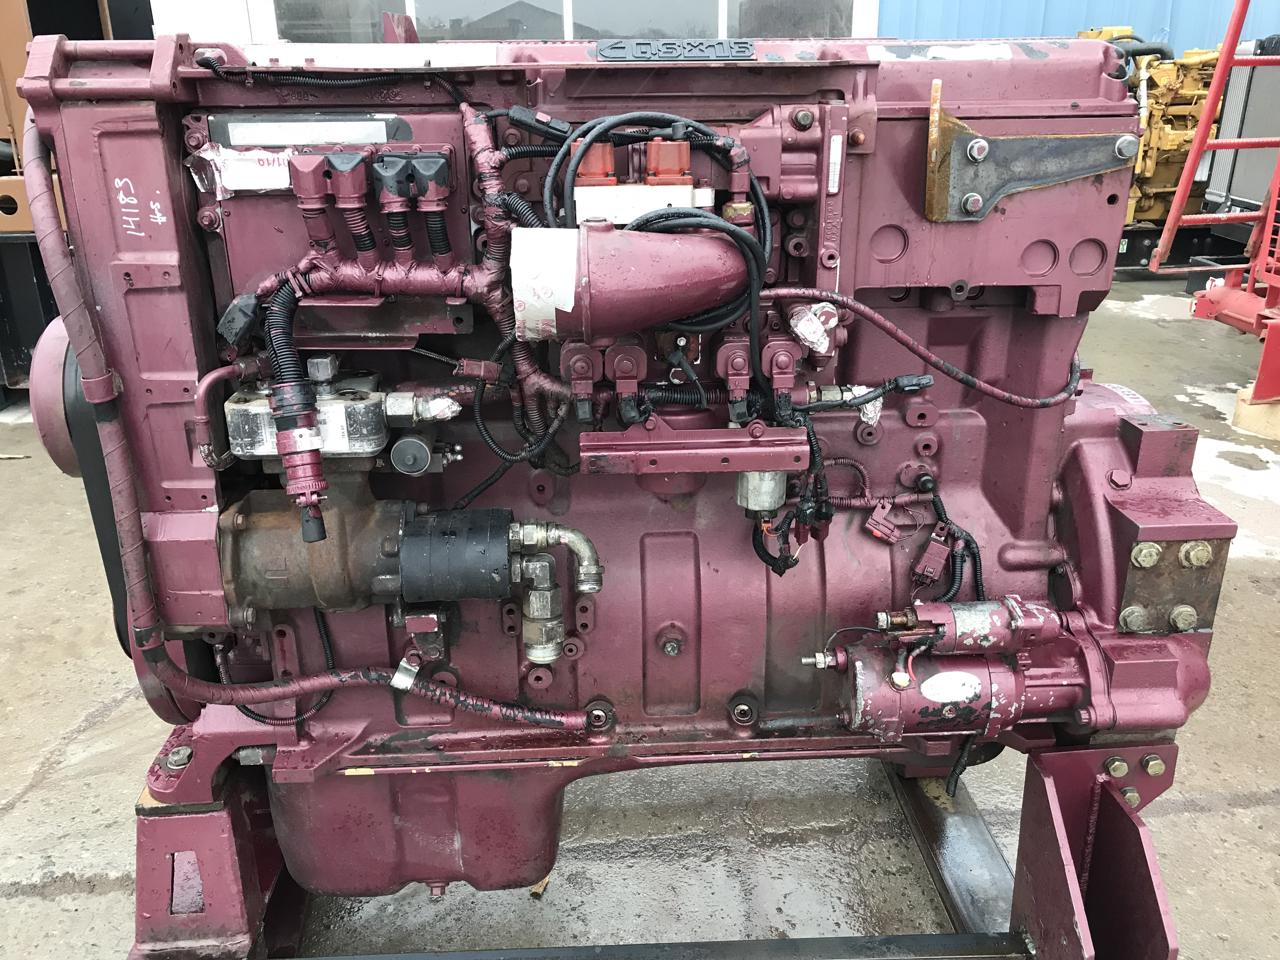 QSX15 Cummins Engine, Running Takeout of Industrial Drill, 600 HP